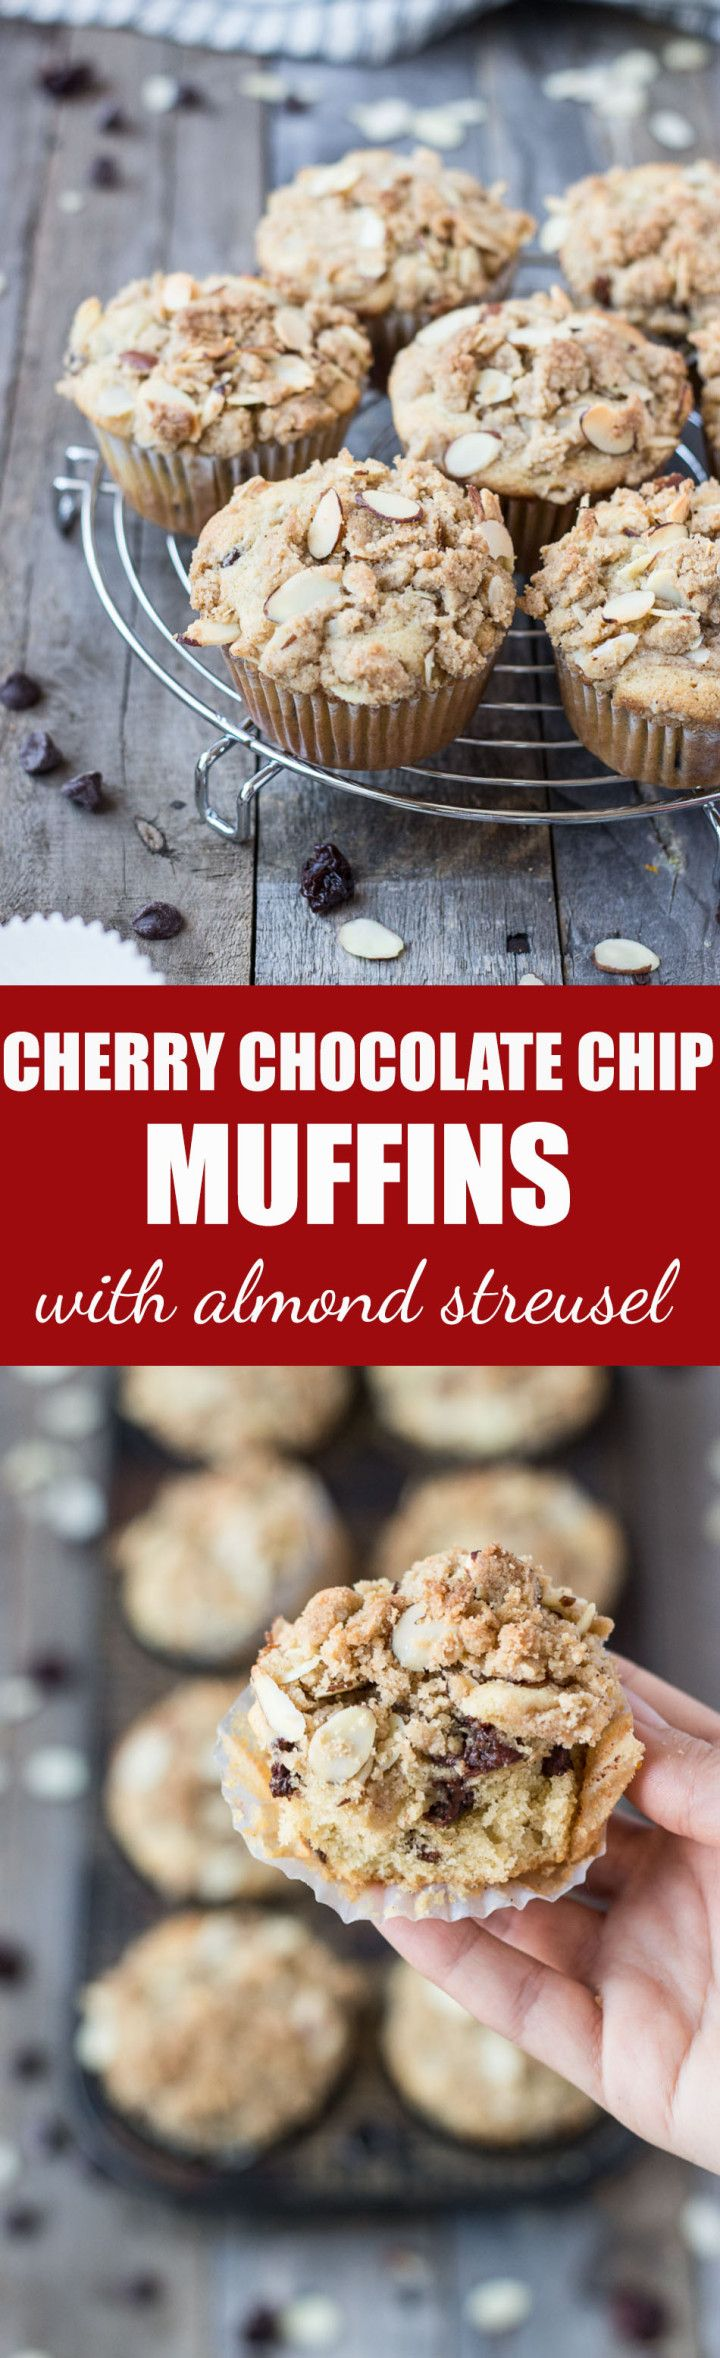 Cherry Chocolate Chip Muffins with Almond Streusel